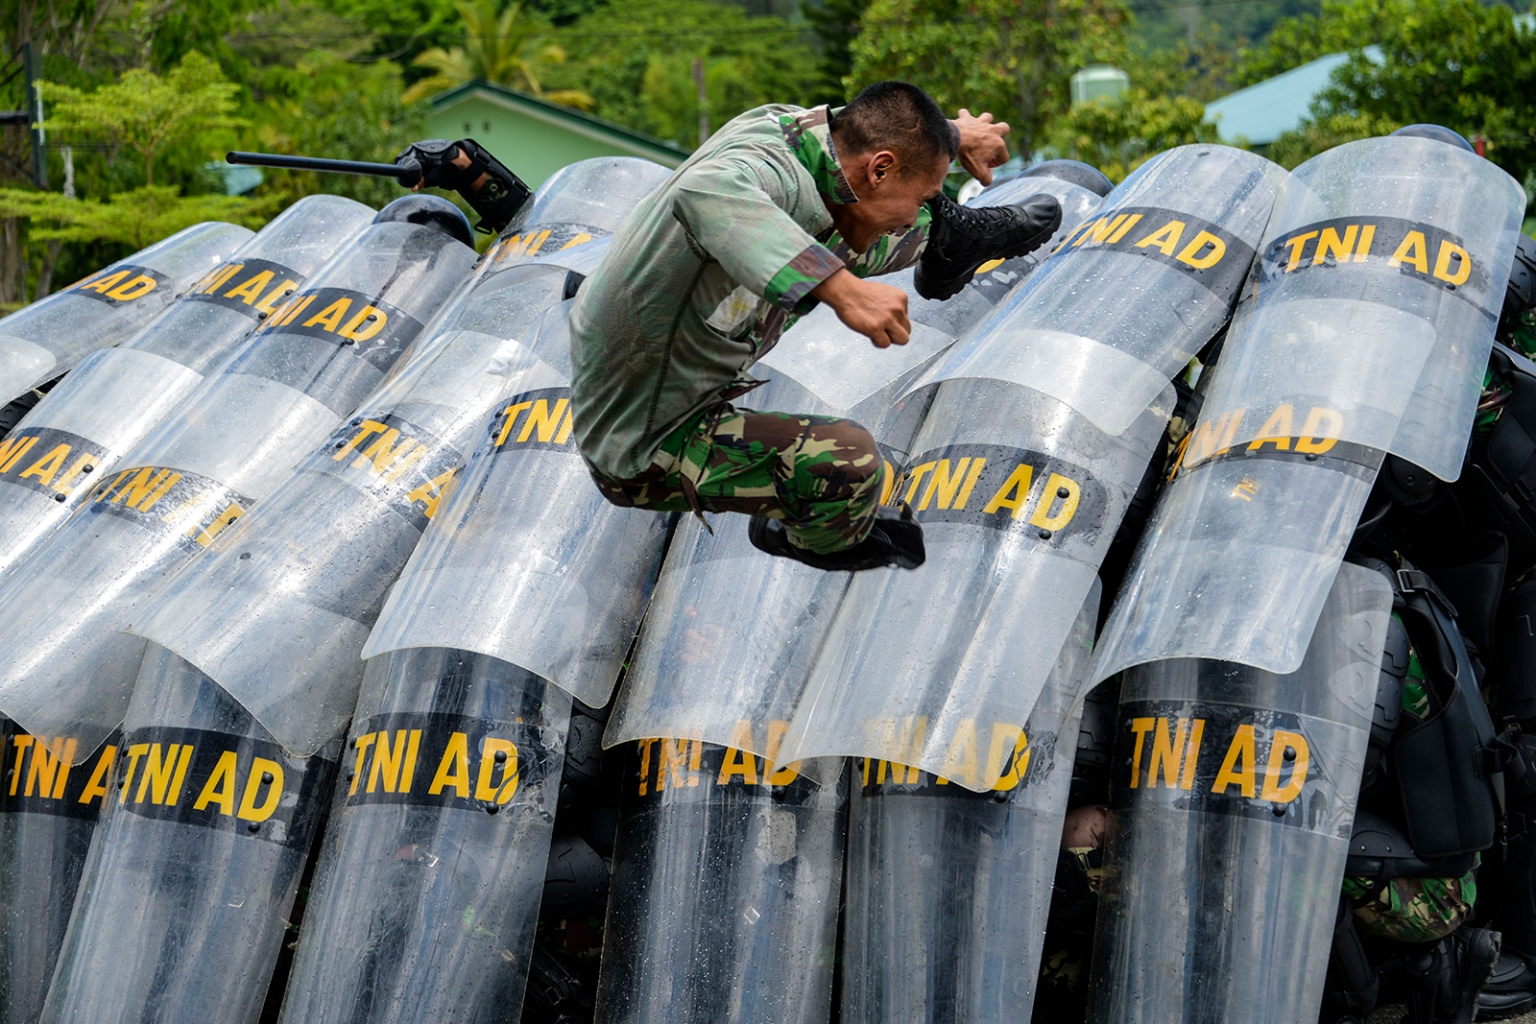 Indonesian soldiers take part in a practice for handling riots ahead of elections at their military home base in Banda Aceh, Aceh province, on April 9. CHAIDEER MAHYUDDIN/AFP/Getty Images